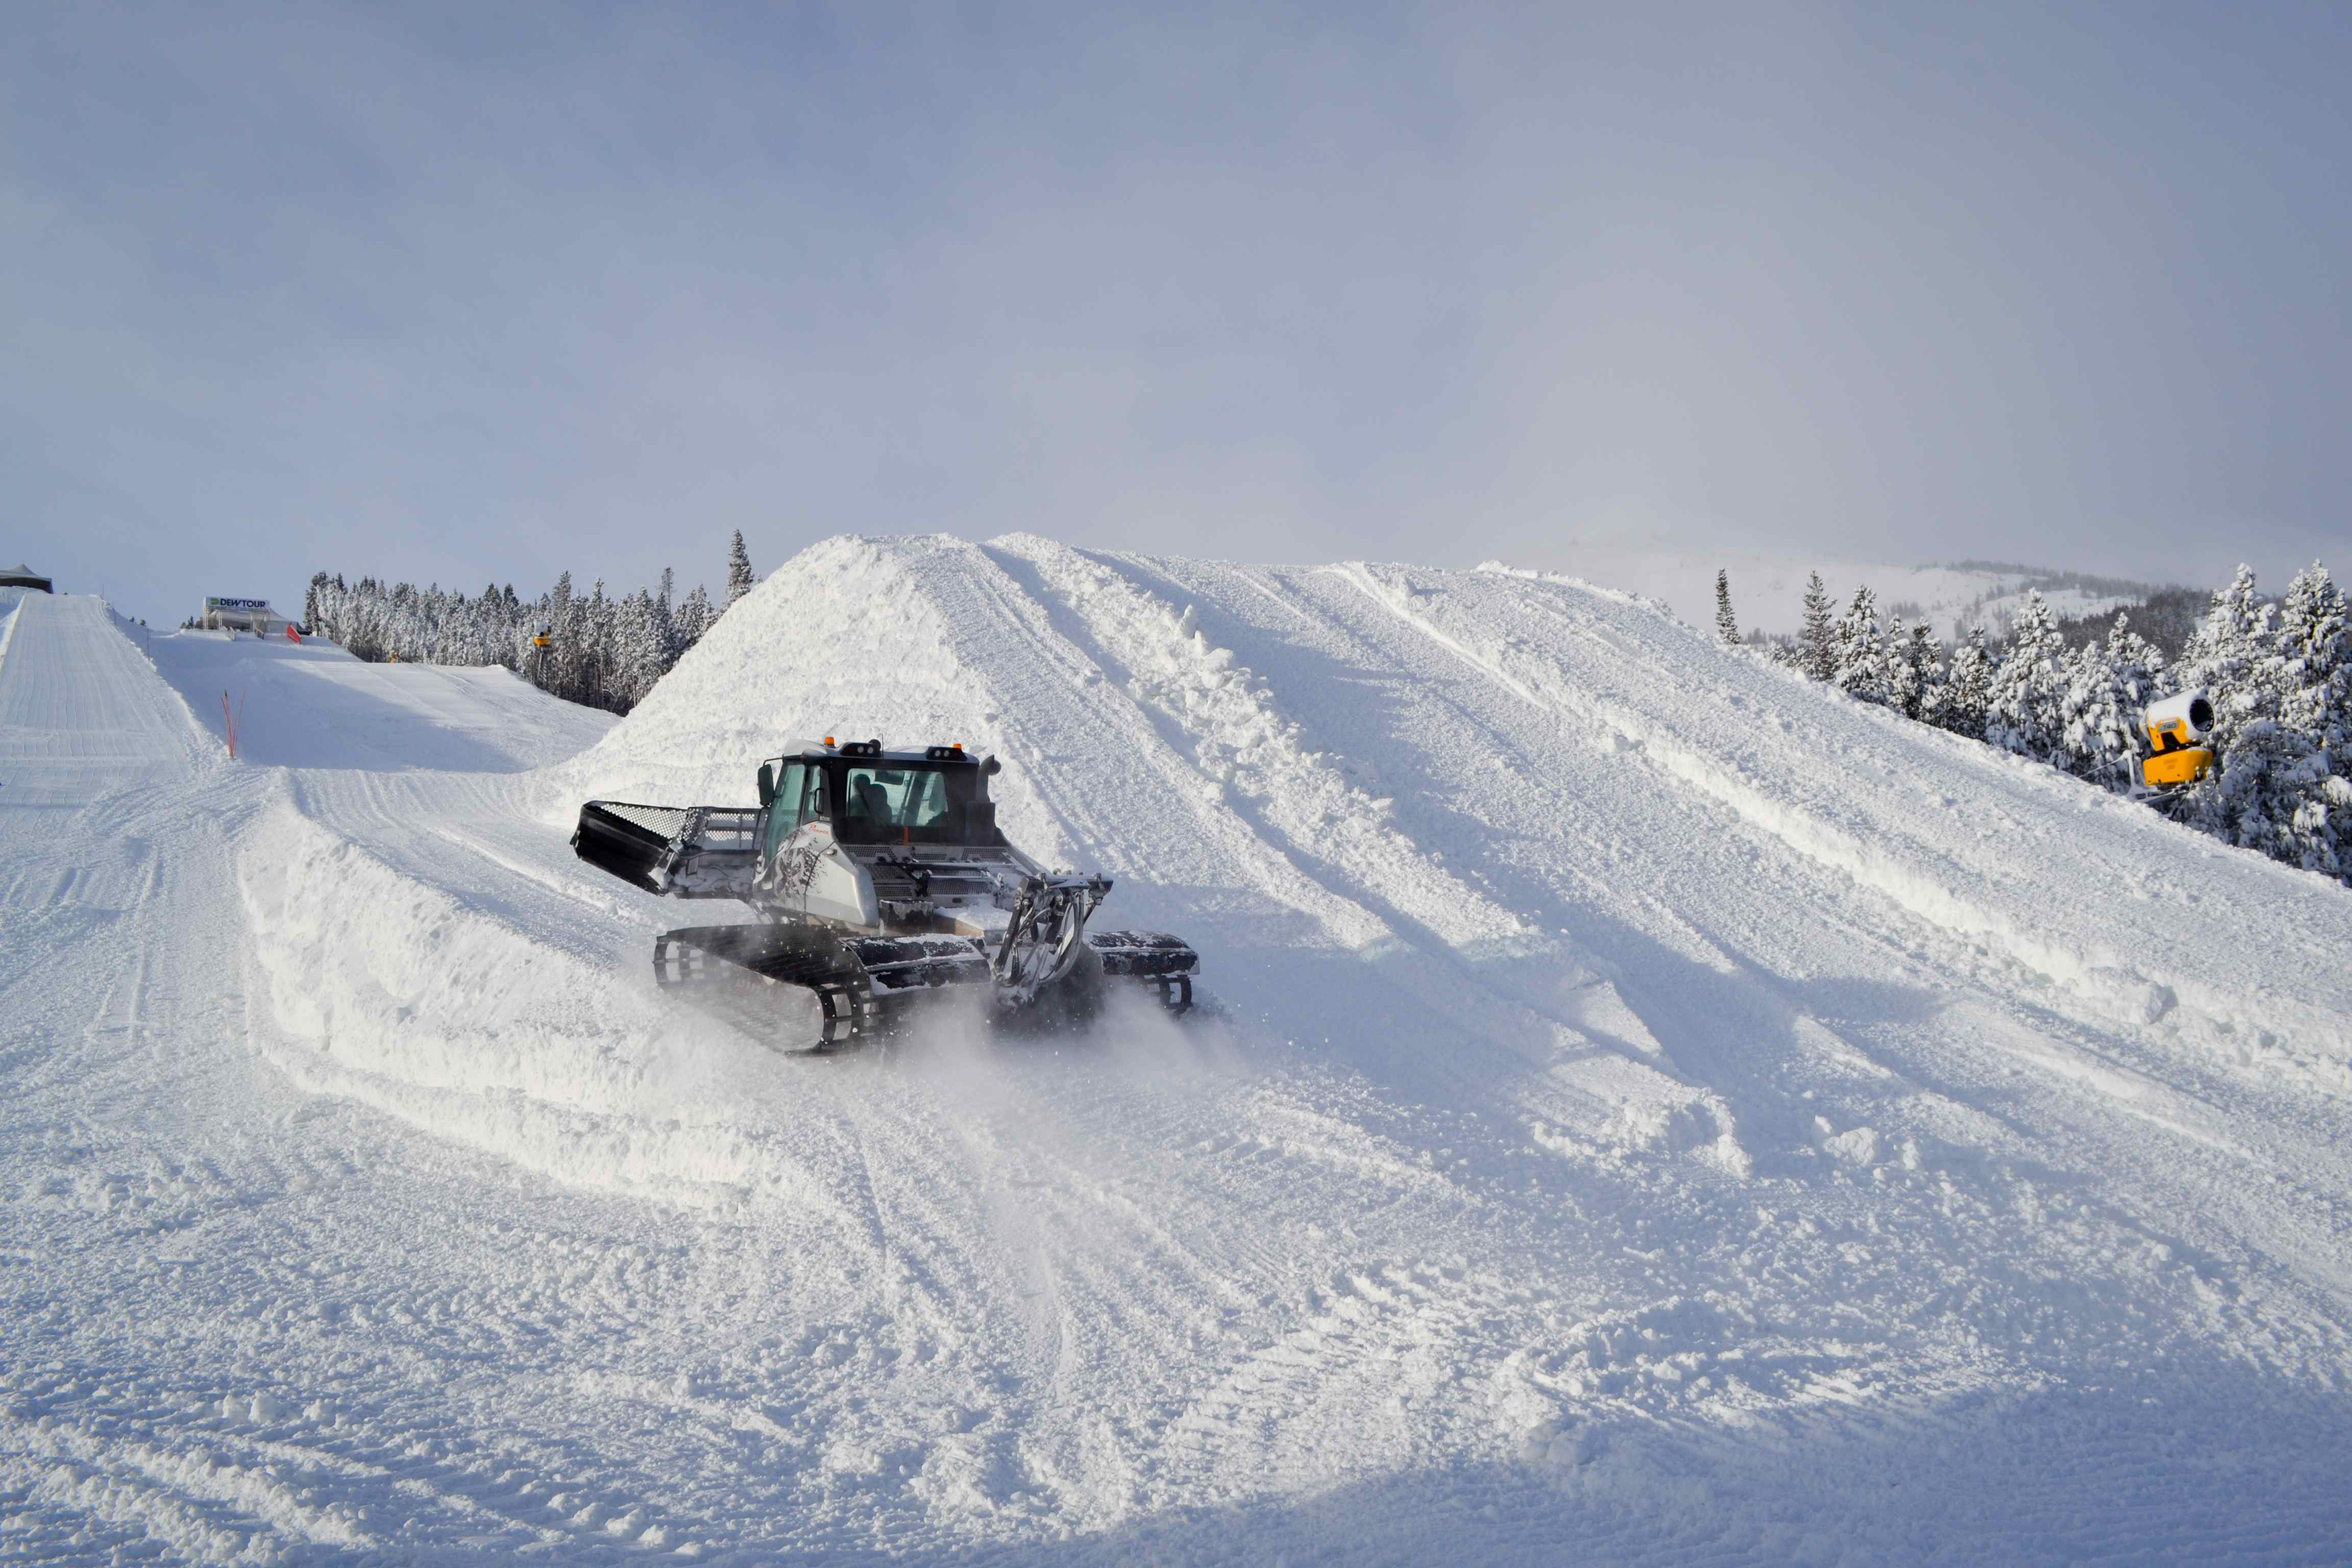 Snow cat on the Dew Tour course